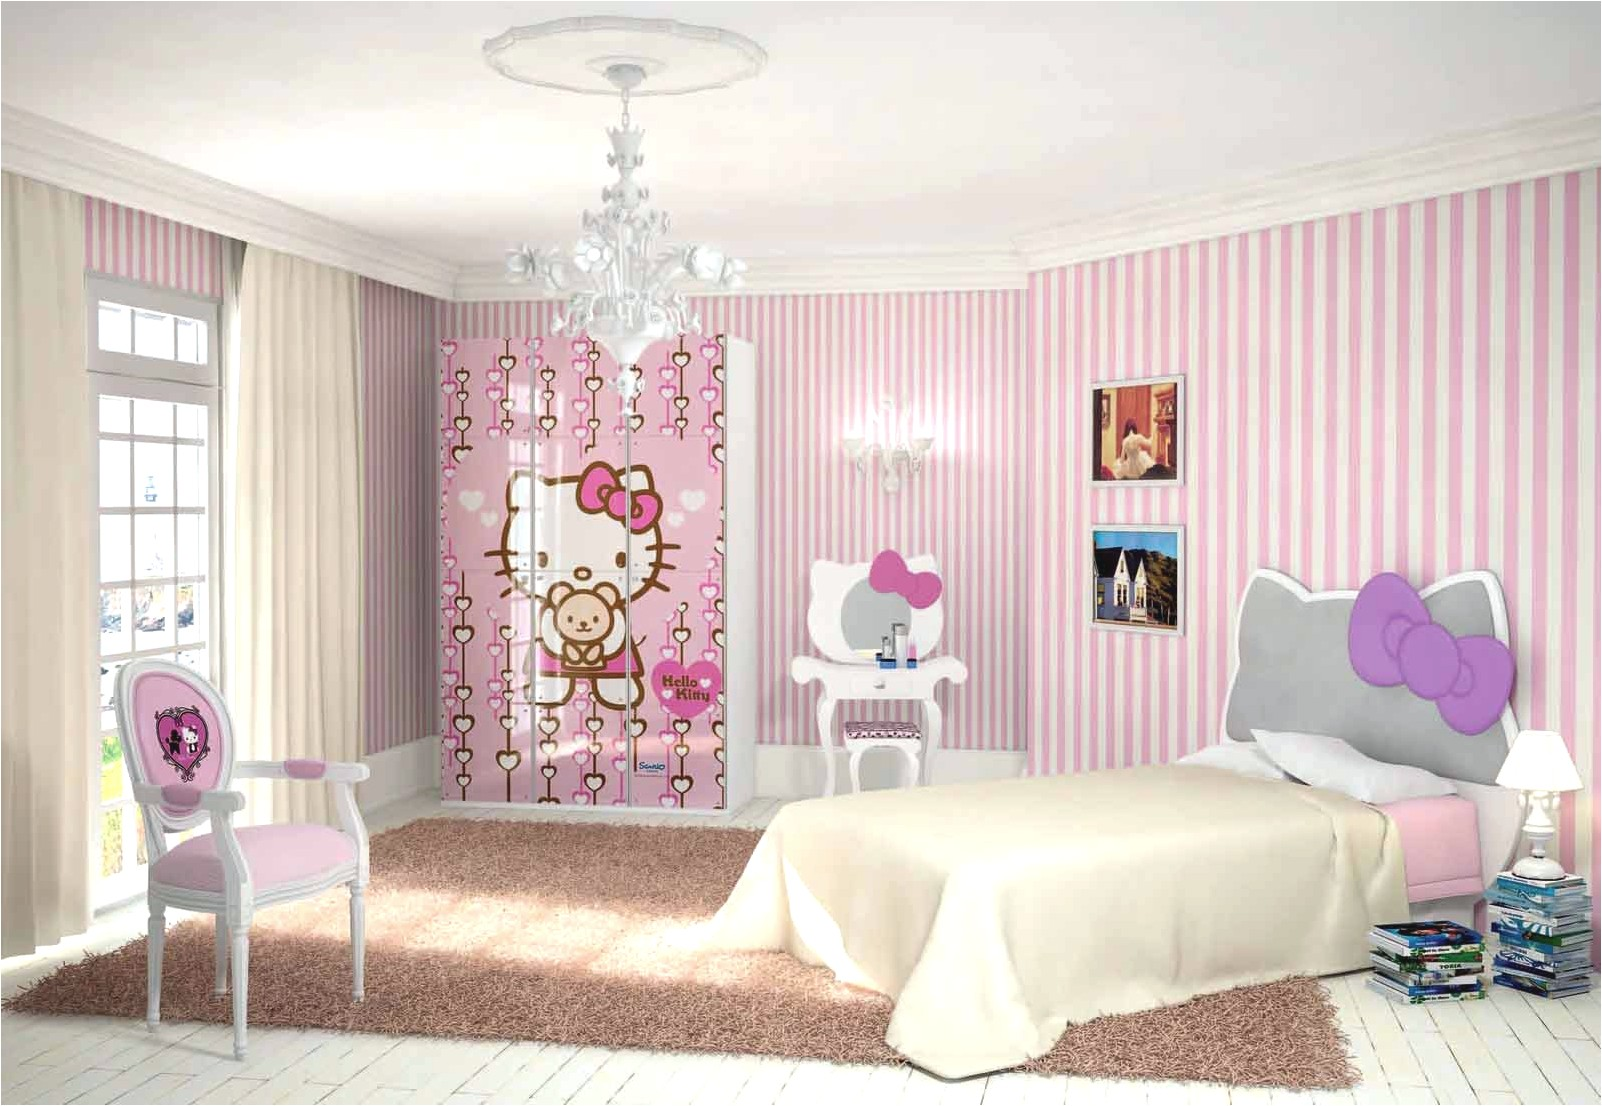 Wonderful Hello Kitty Room Design Ideas Part - 10: VIEW IN GALLERY Hello-kitty-bedroom-design-ideas-for-teen-girl